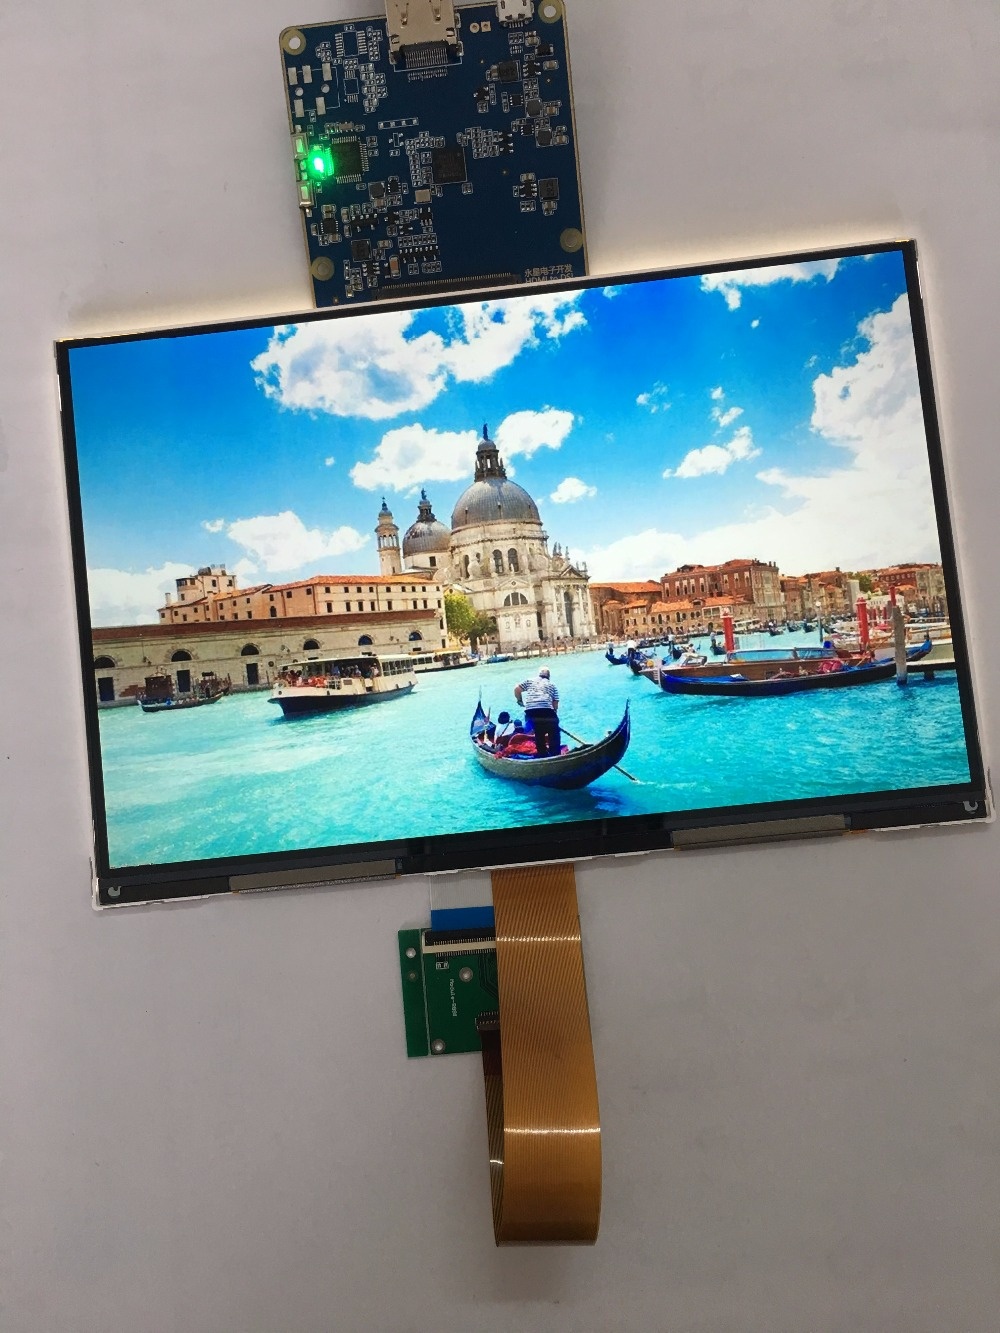 8.9 inch 2560*1600 2k 144p IPS lcd module display monitor with HDMI-MIPI board for diy 3d printer and DLP projector